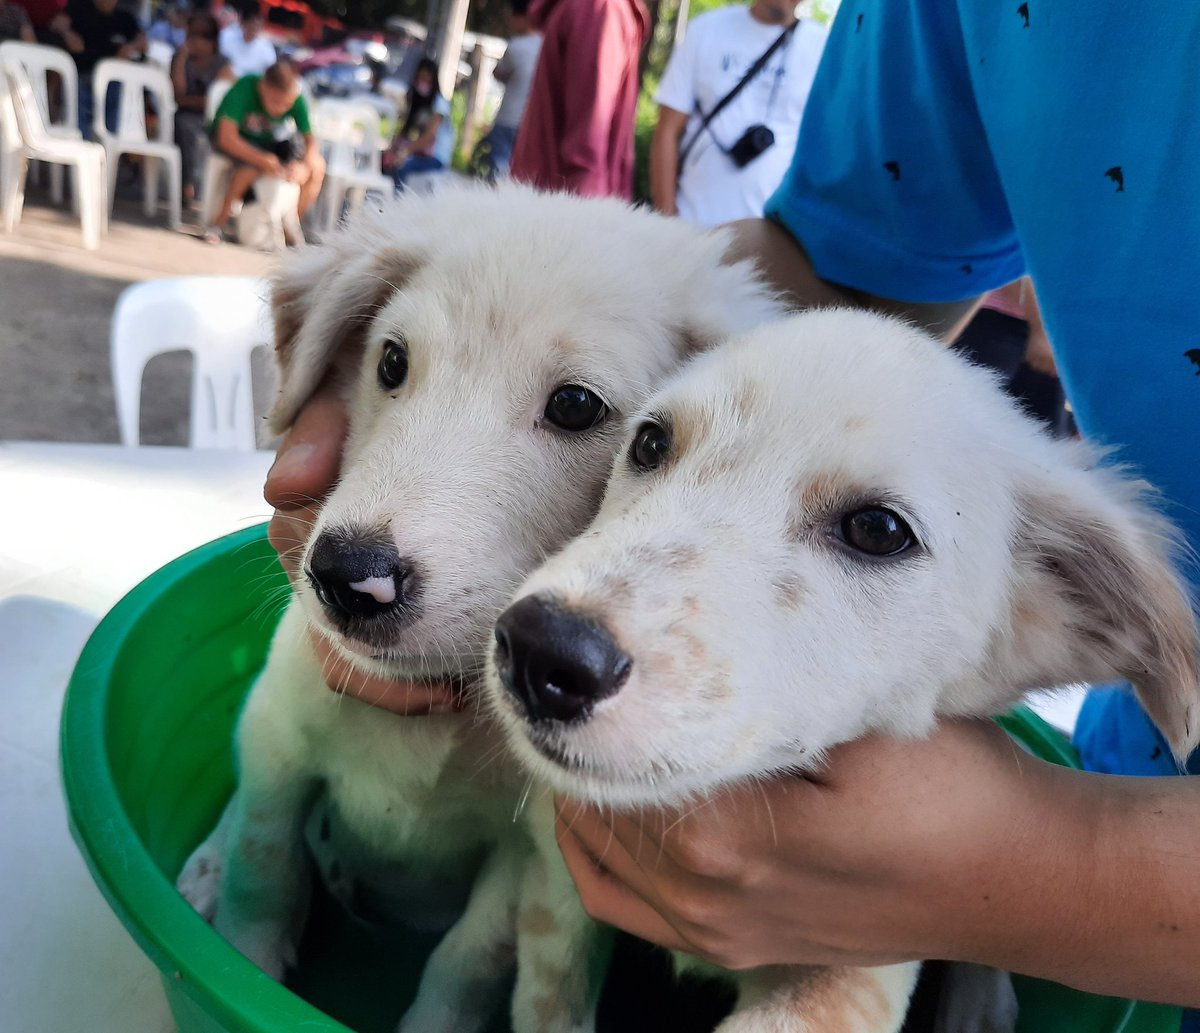 Starting the week off right with these cute faces  #MondayMorning #dogsoftwitter<br>http://pic.twitter.com/pLG4jQM05V